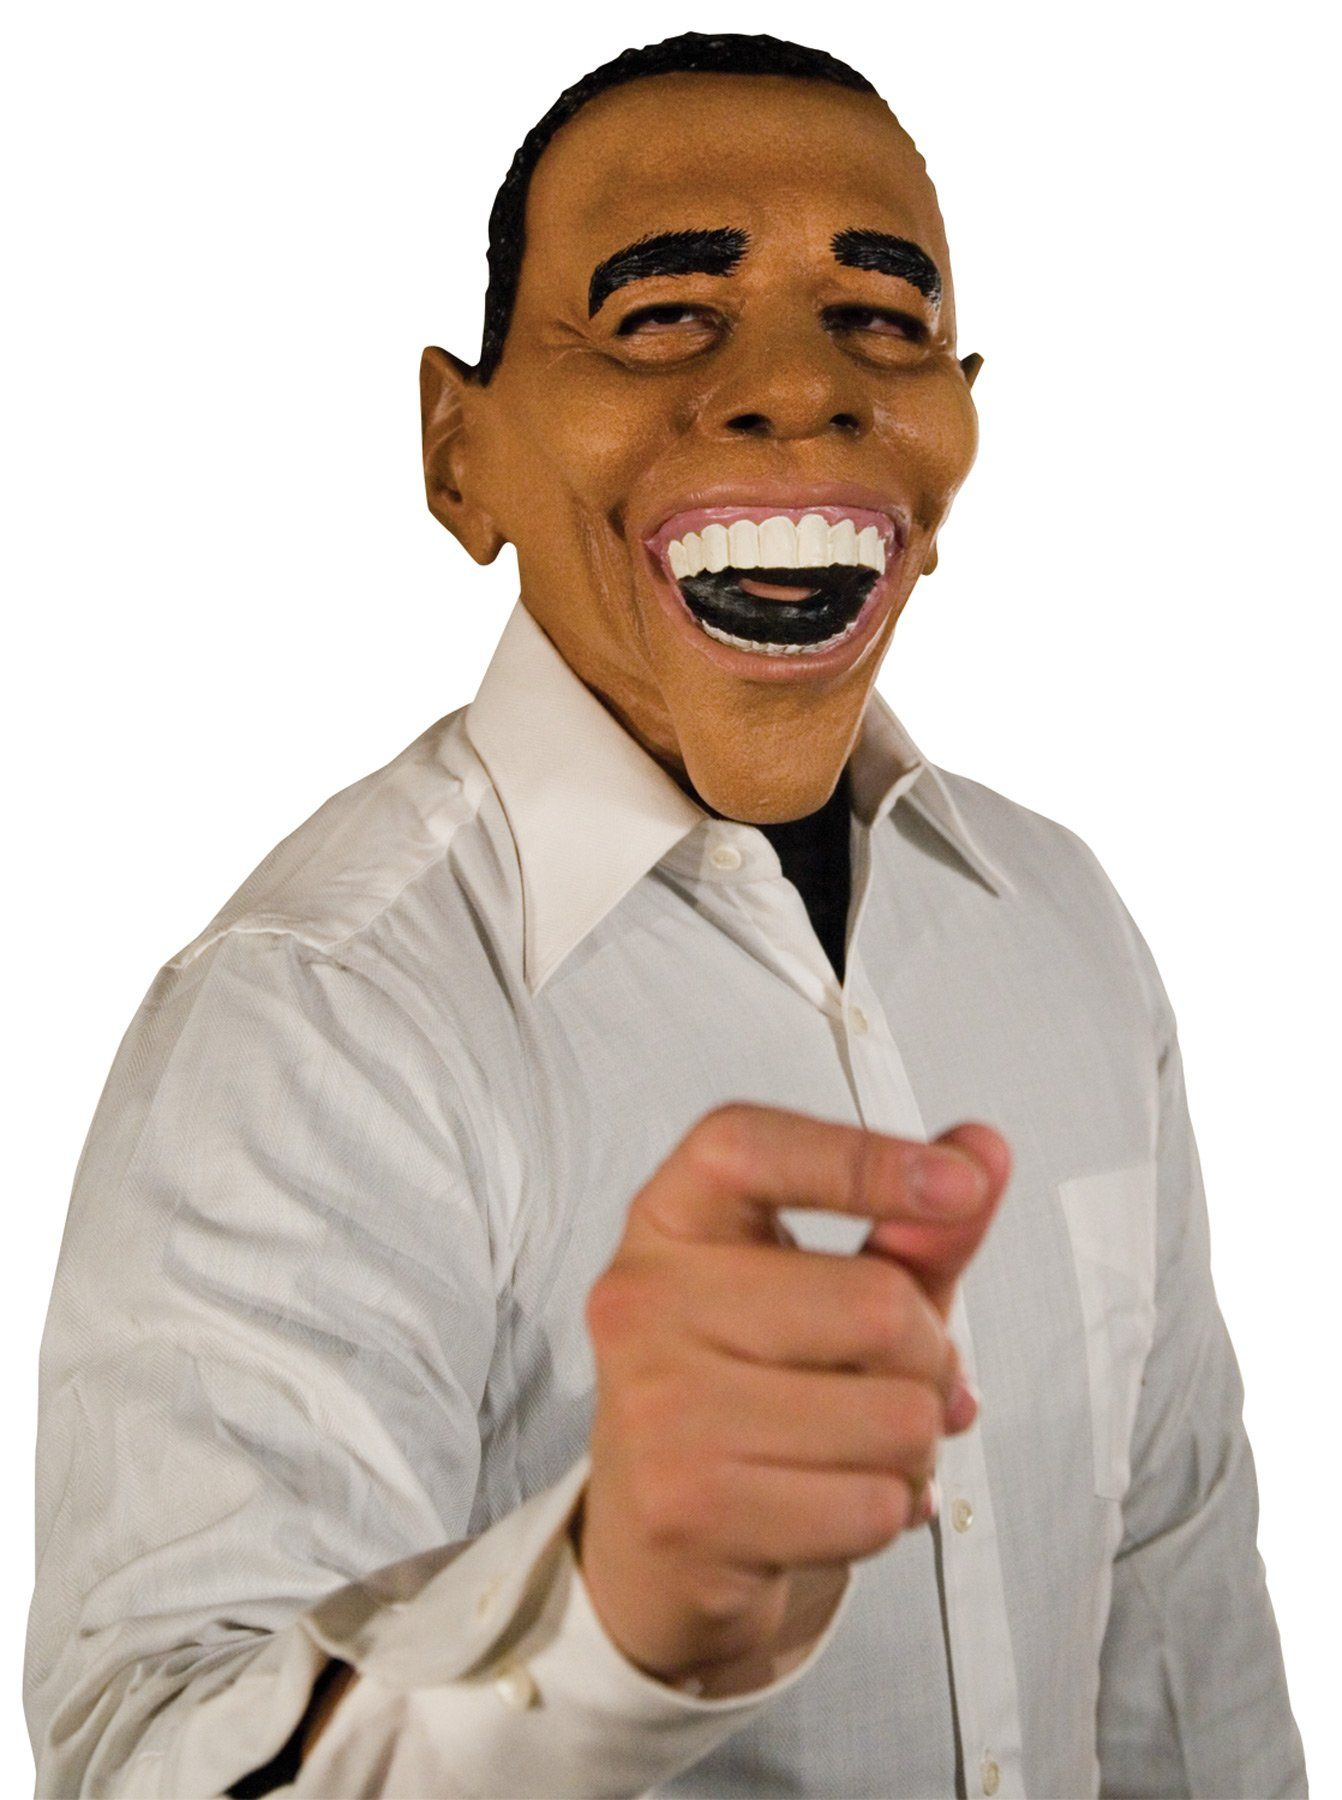 obama mask | products | pinterest | obama, masking and products